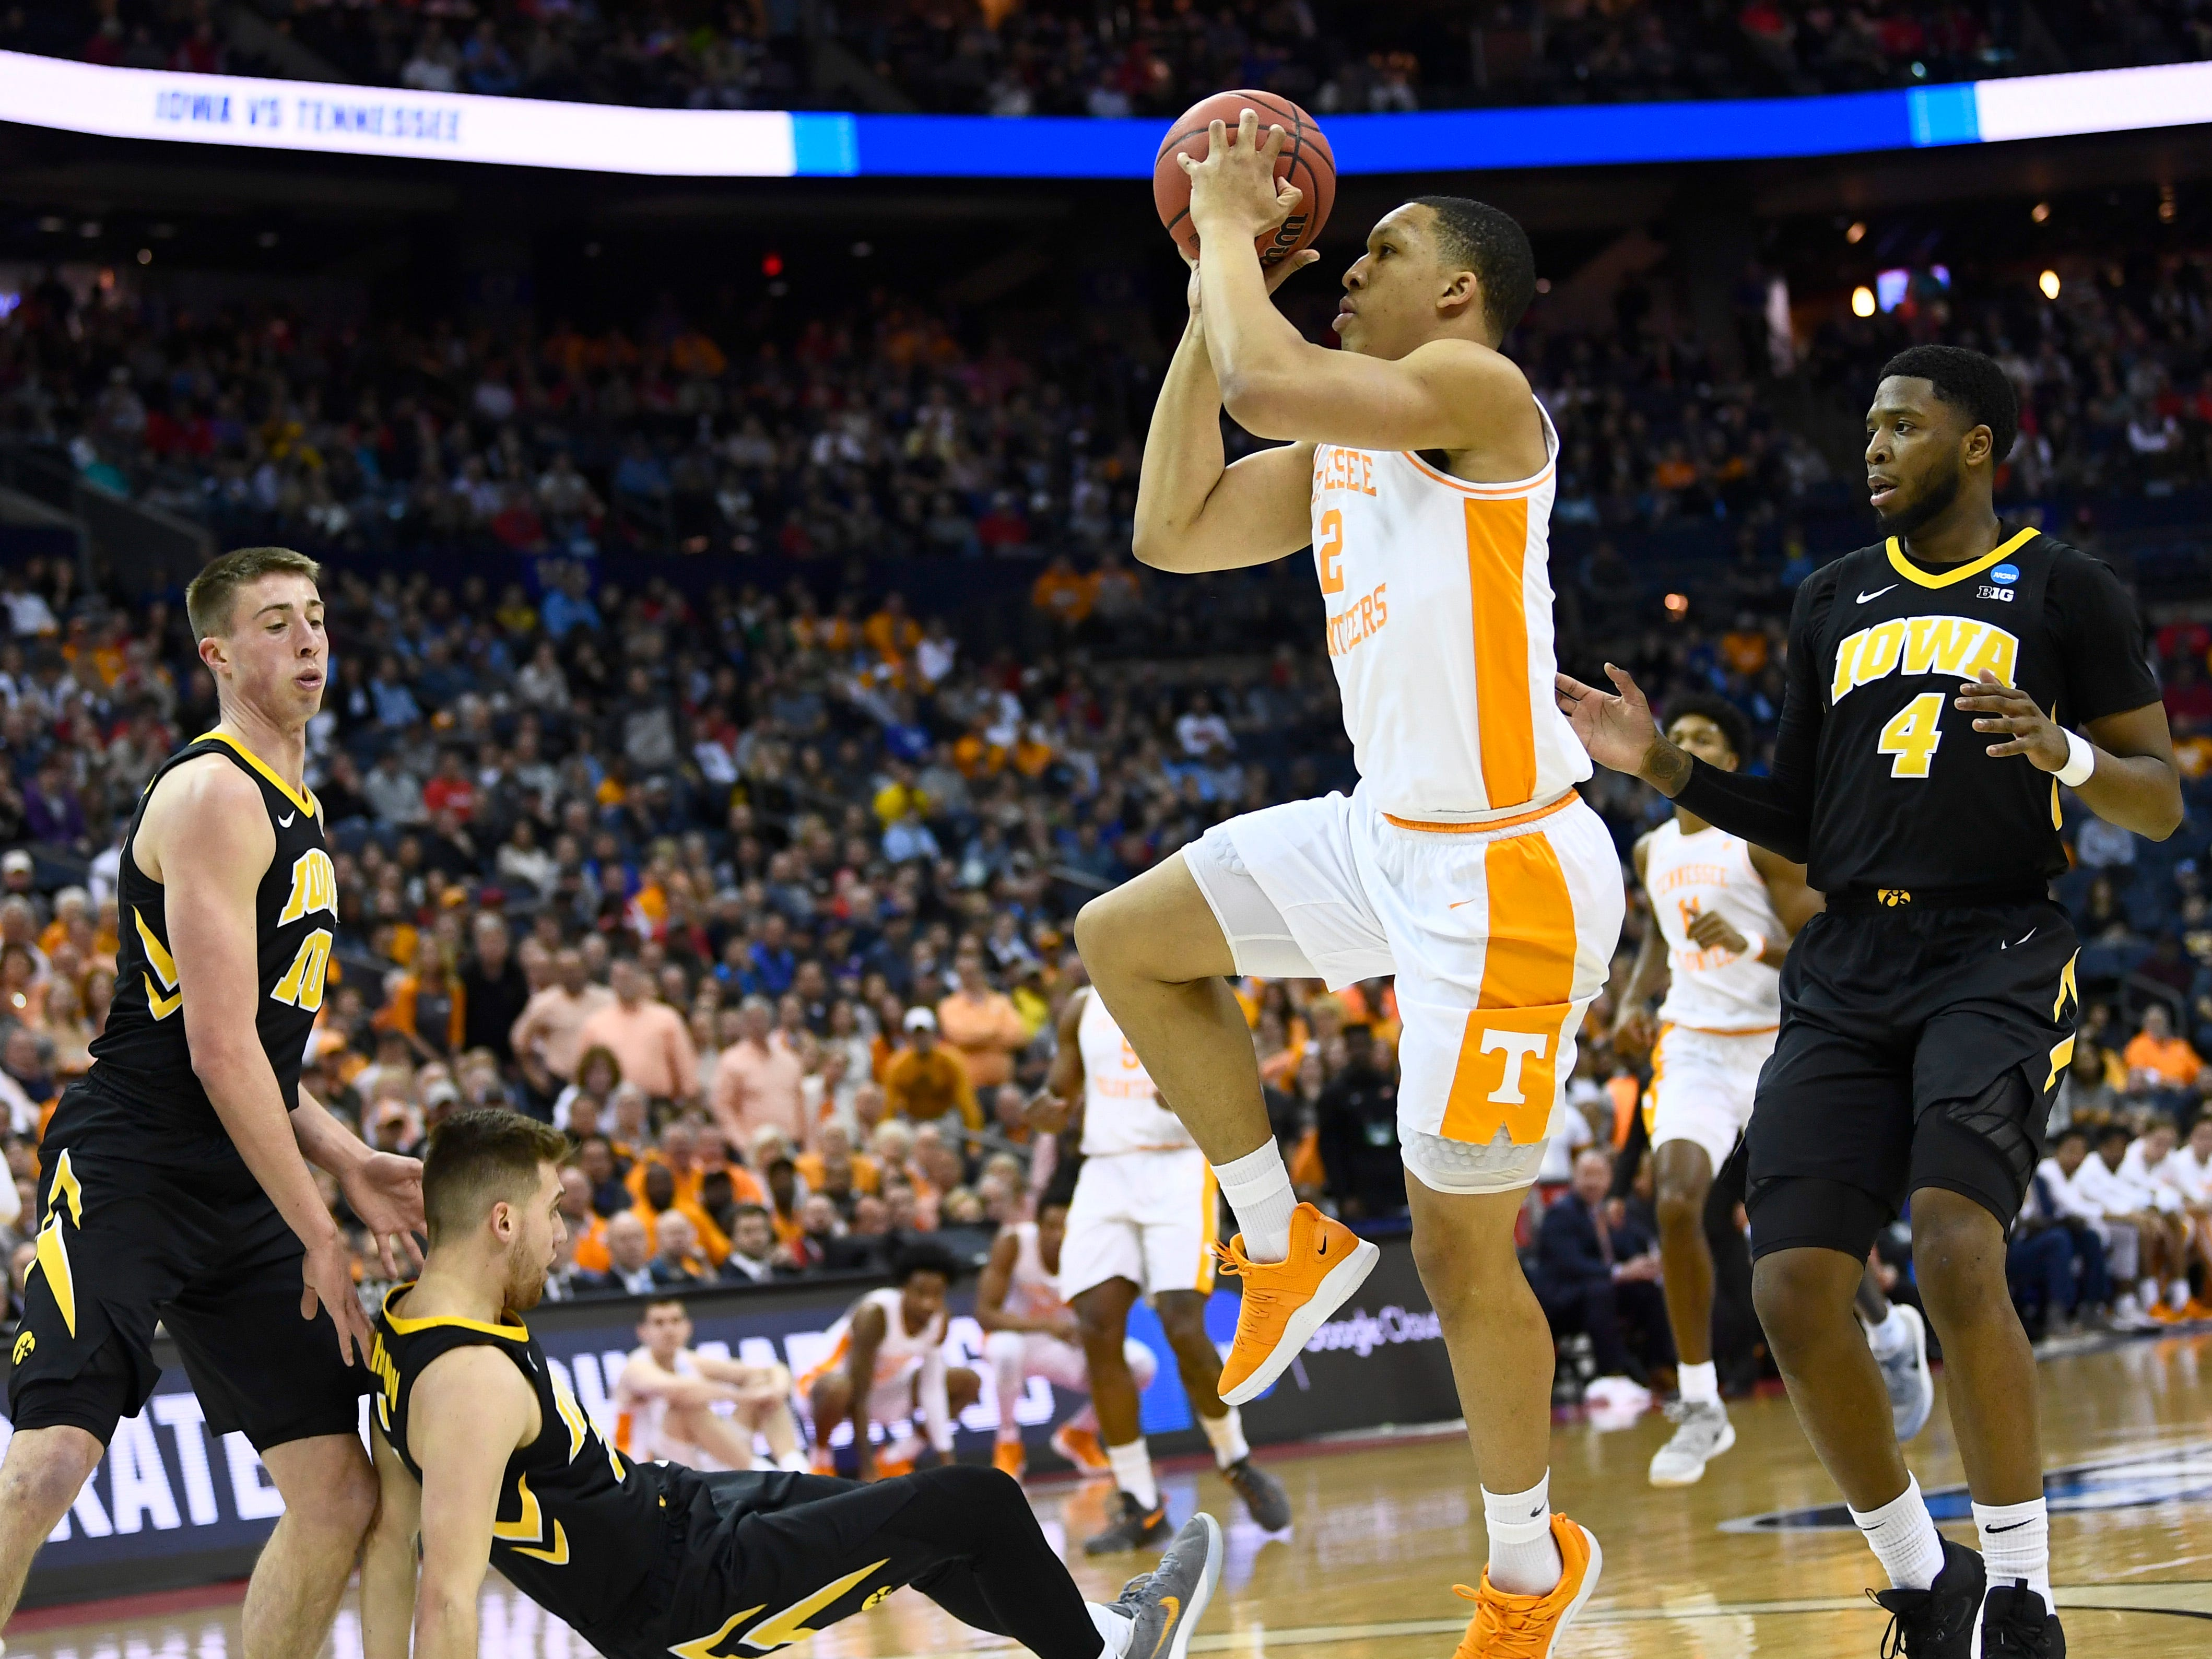 Tennessee forward Grant Williams (2) shoots while being fouled by Iowa guard Jordan Bohannon (3) during the first half of the second-round game of the NCAA Tournament at Nationwide Arena in Columbus, Ohio, Sunday, March 24, 2019.